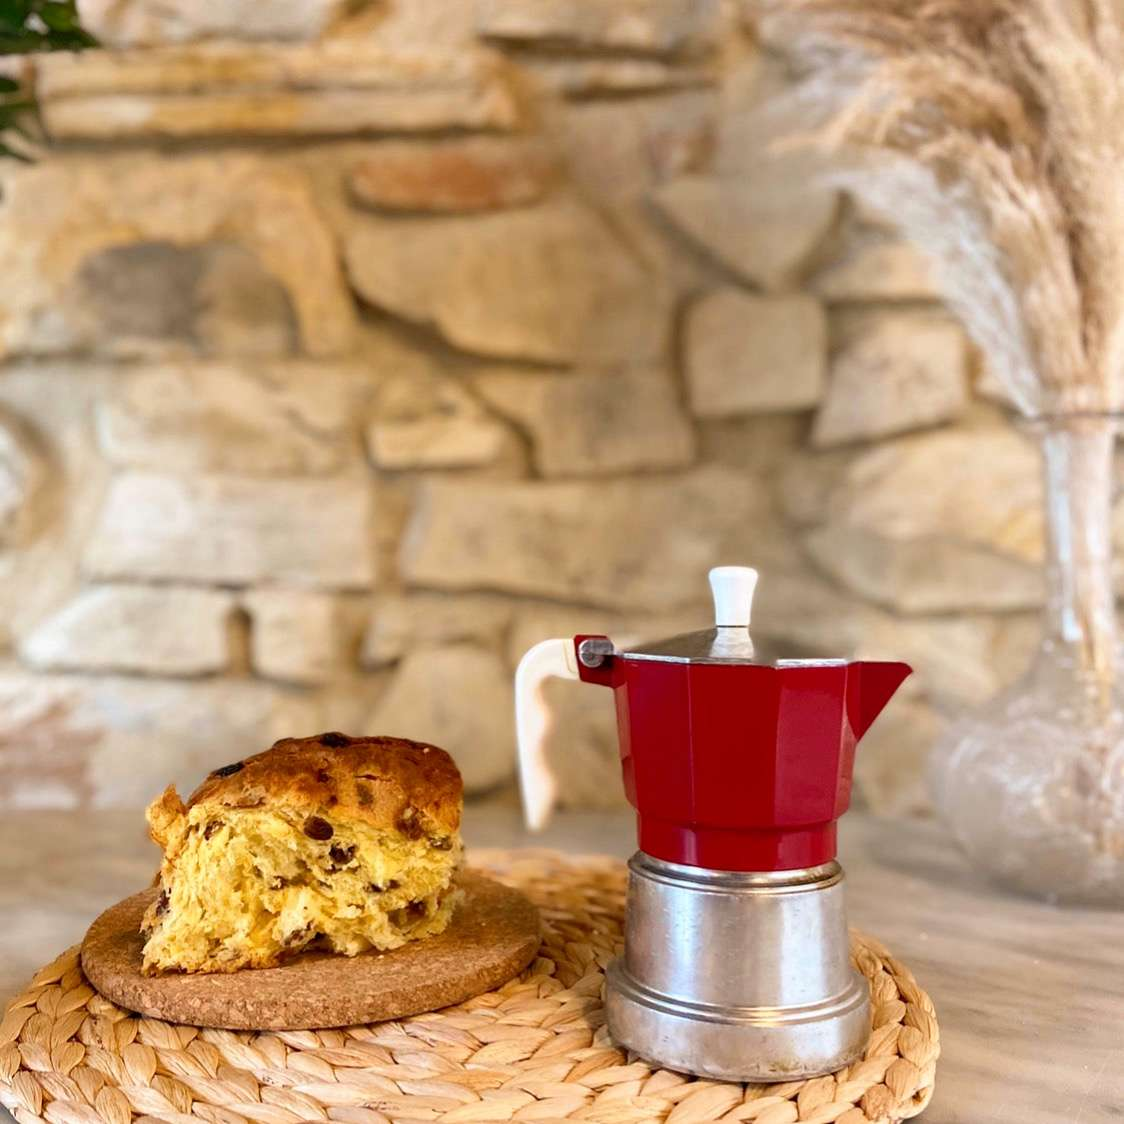 Christmas for Italians means choosing between: Panettone or Pandoro?